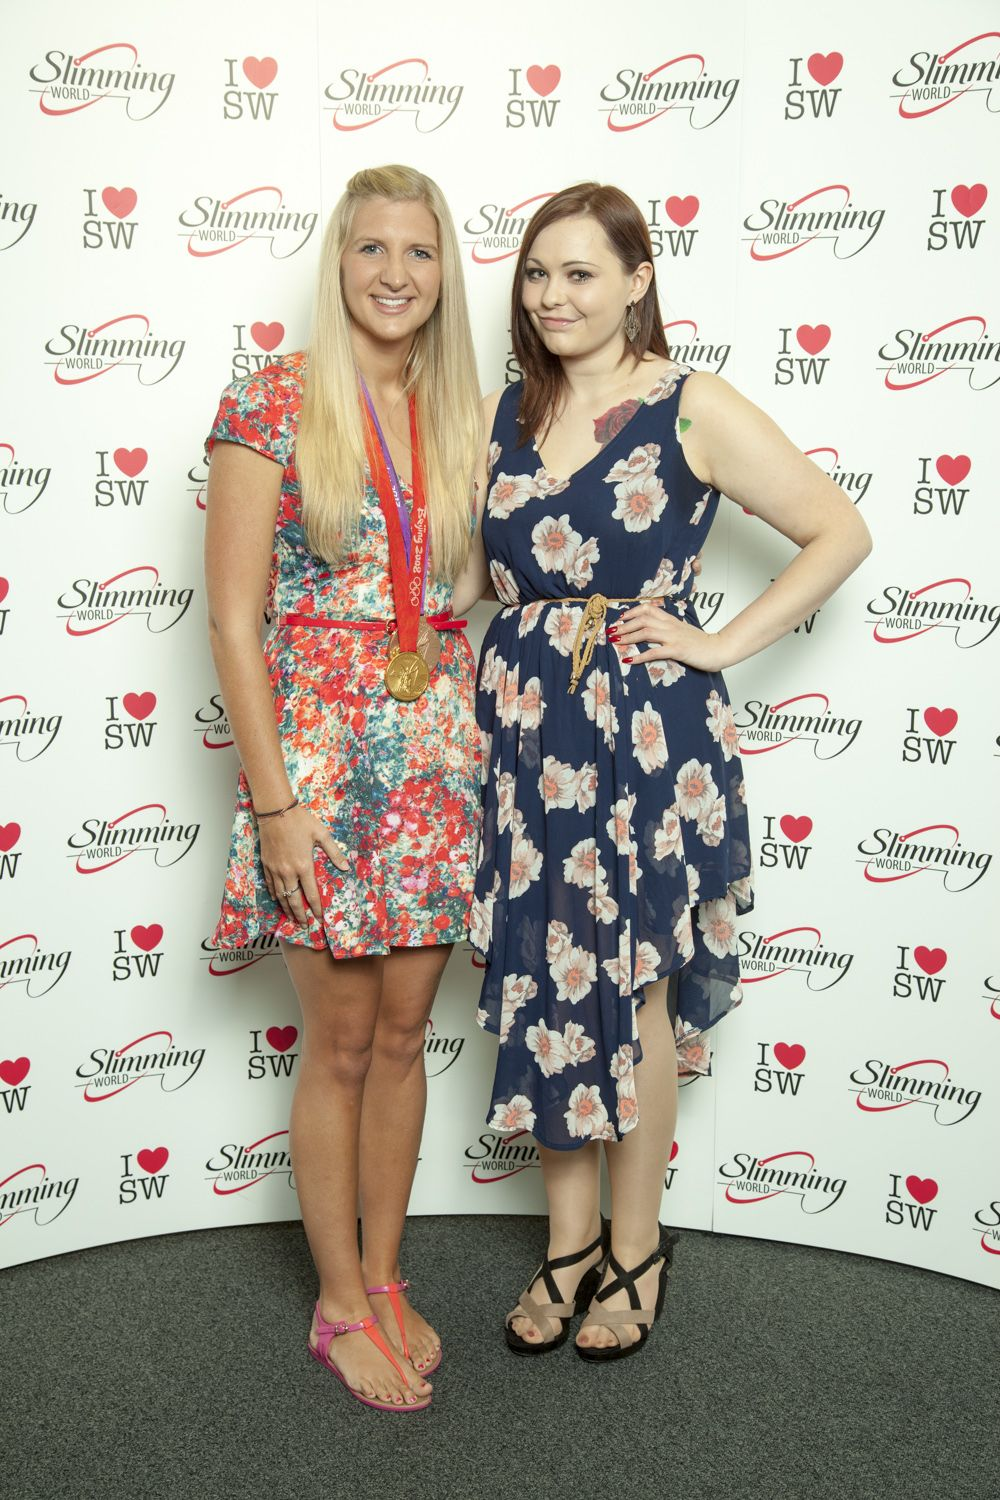 The Young Slimmer of the Year finalist who can say - I love life now